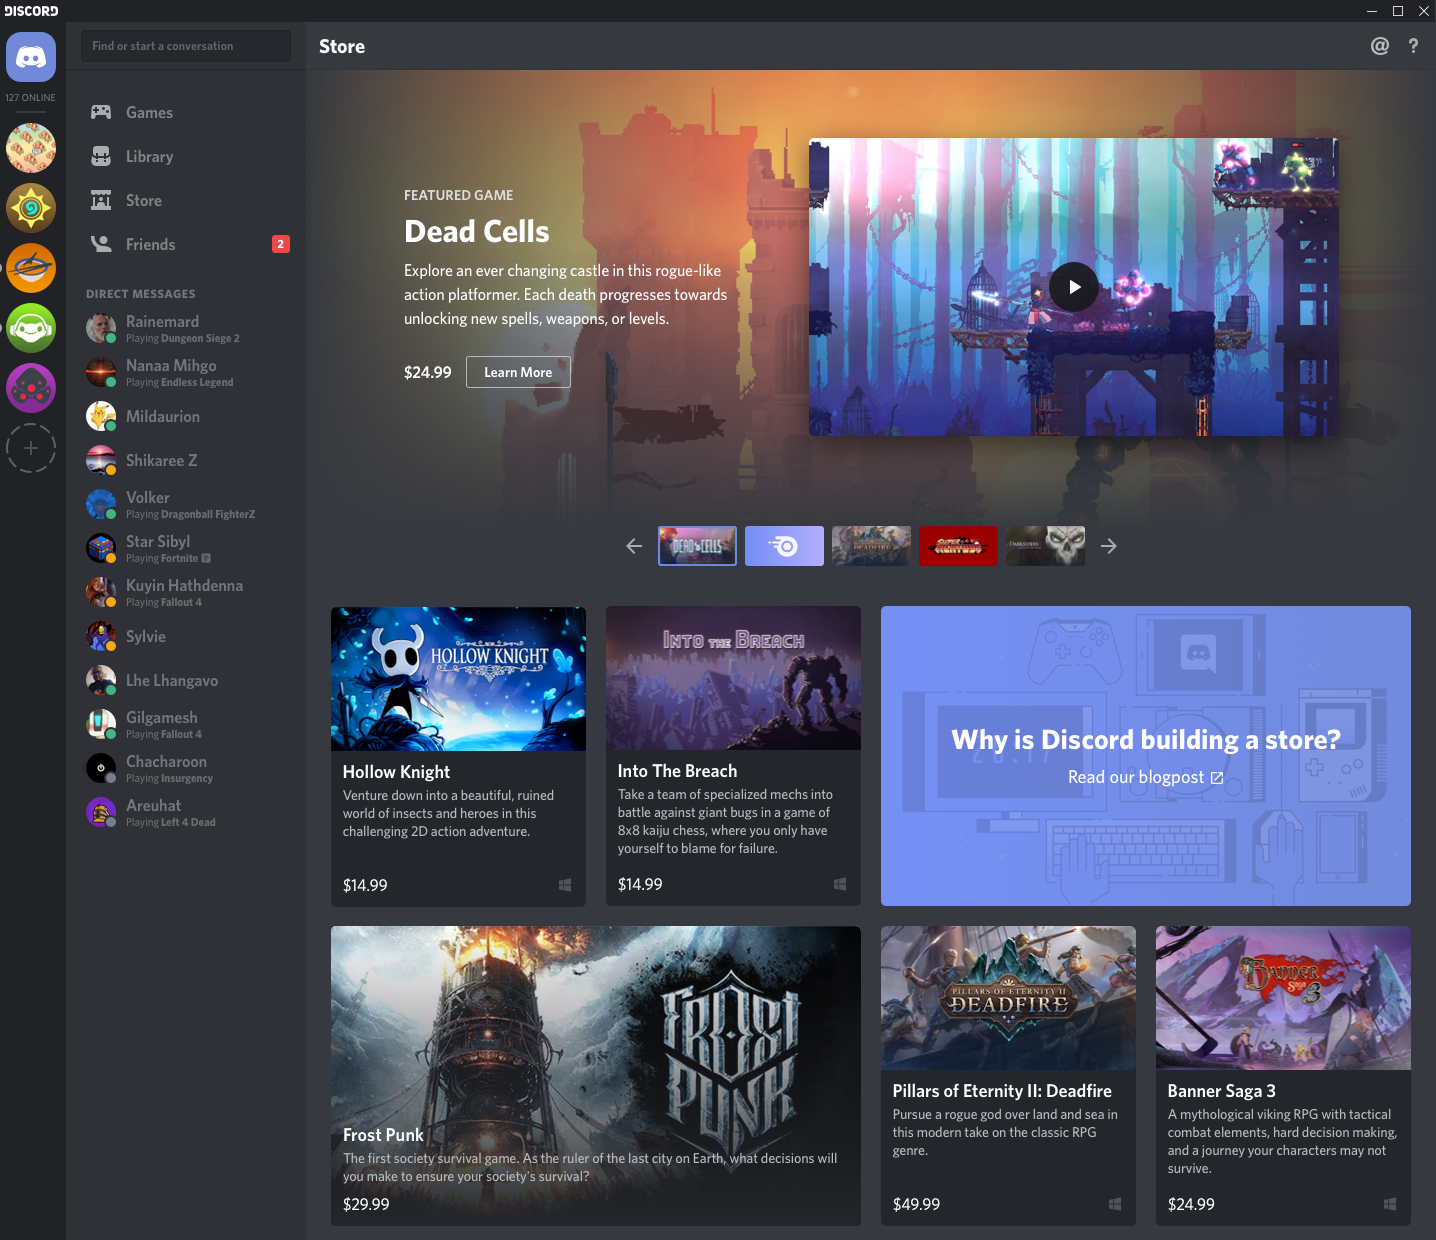 The Discord Store Beta - Discord Blog